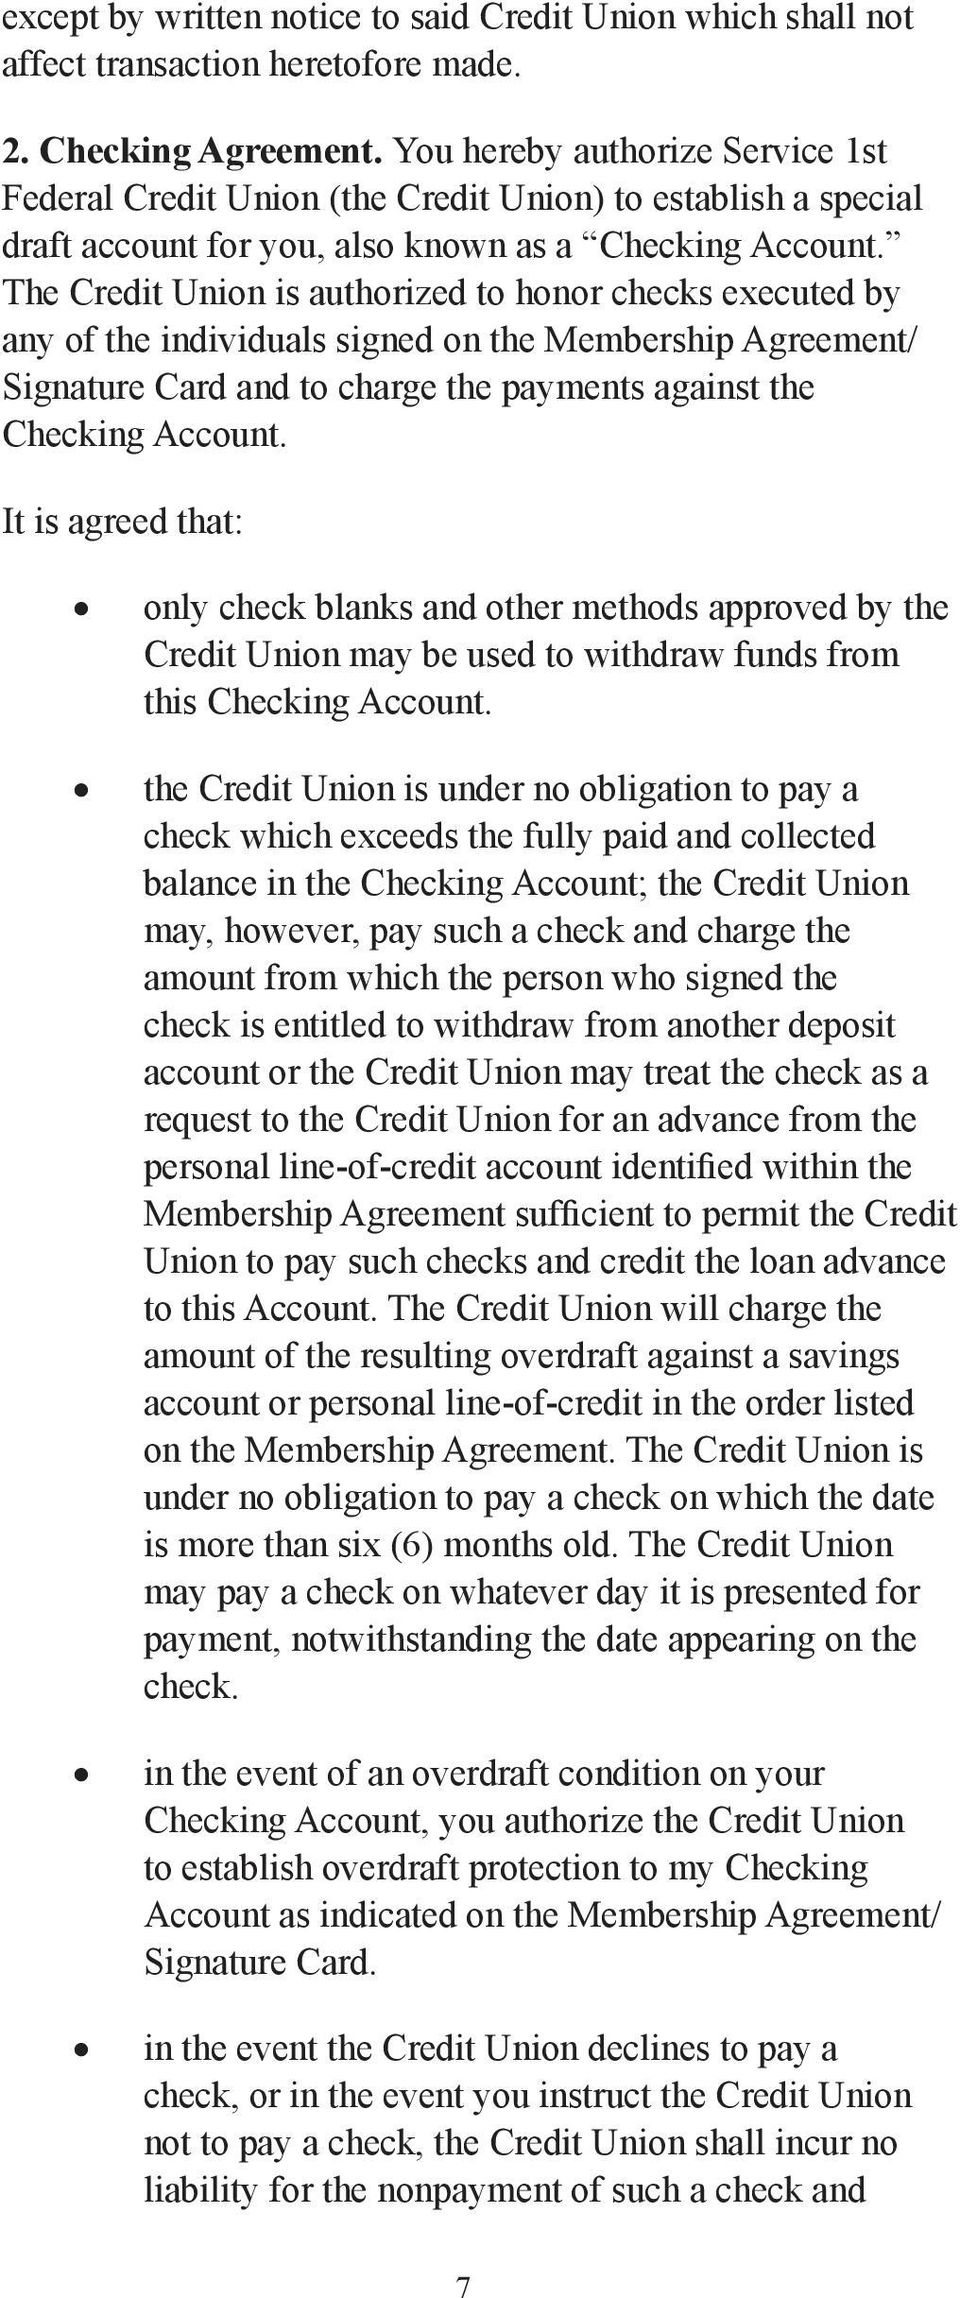 The Credit Union is authorized to honor checks executed by any of the individuals signed on the Membership Agreement/ Signature Card and to charge the payments against the Checking Account.